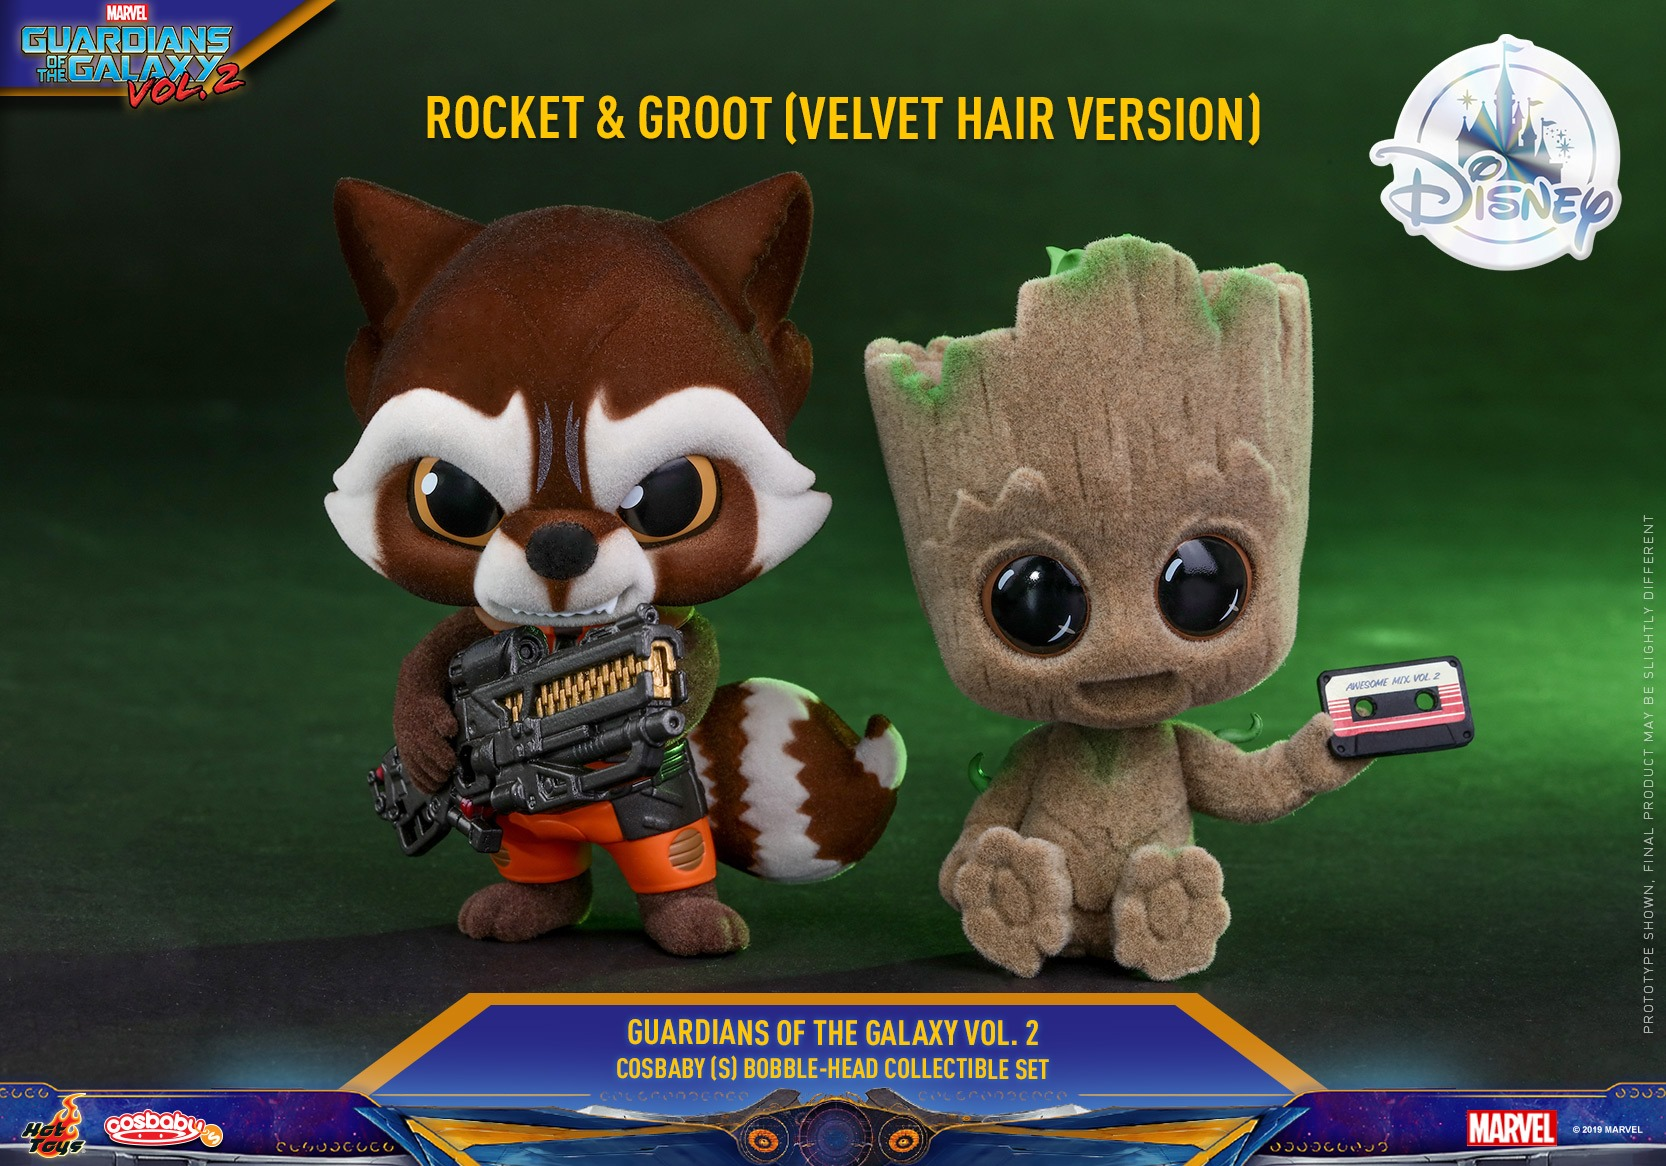 D23 Gets Two New Adorable Hot Toys Marvel Cosbaby's